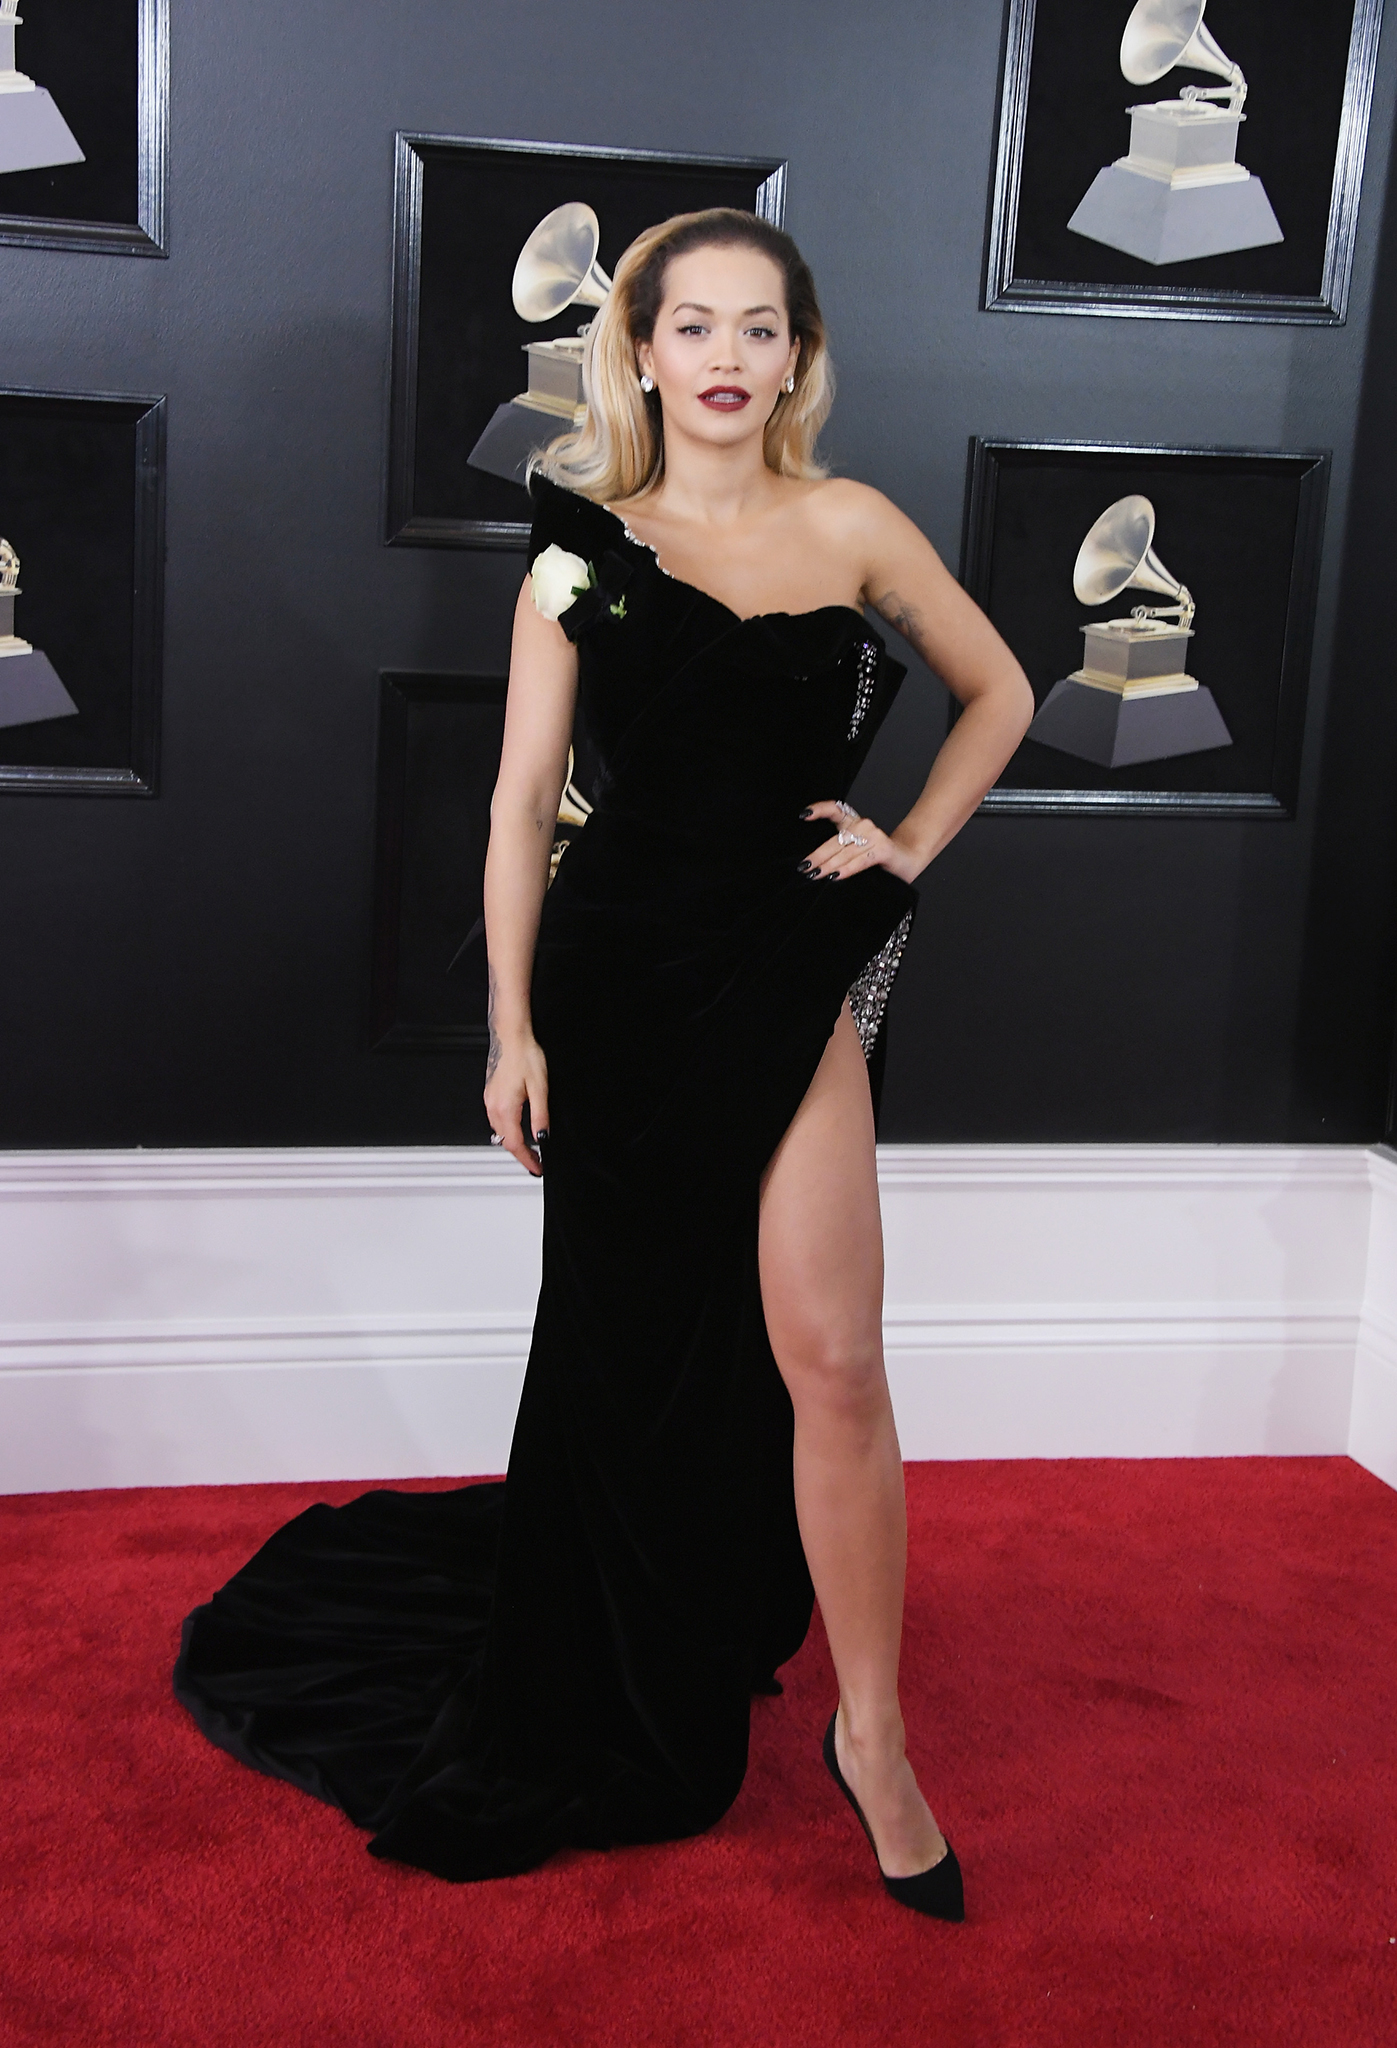 Recording artist Rita Ora attends the 60th Annual GRAMMY Awards at Madison Square Garden on January 28, 2018 in New York City.